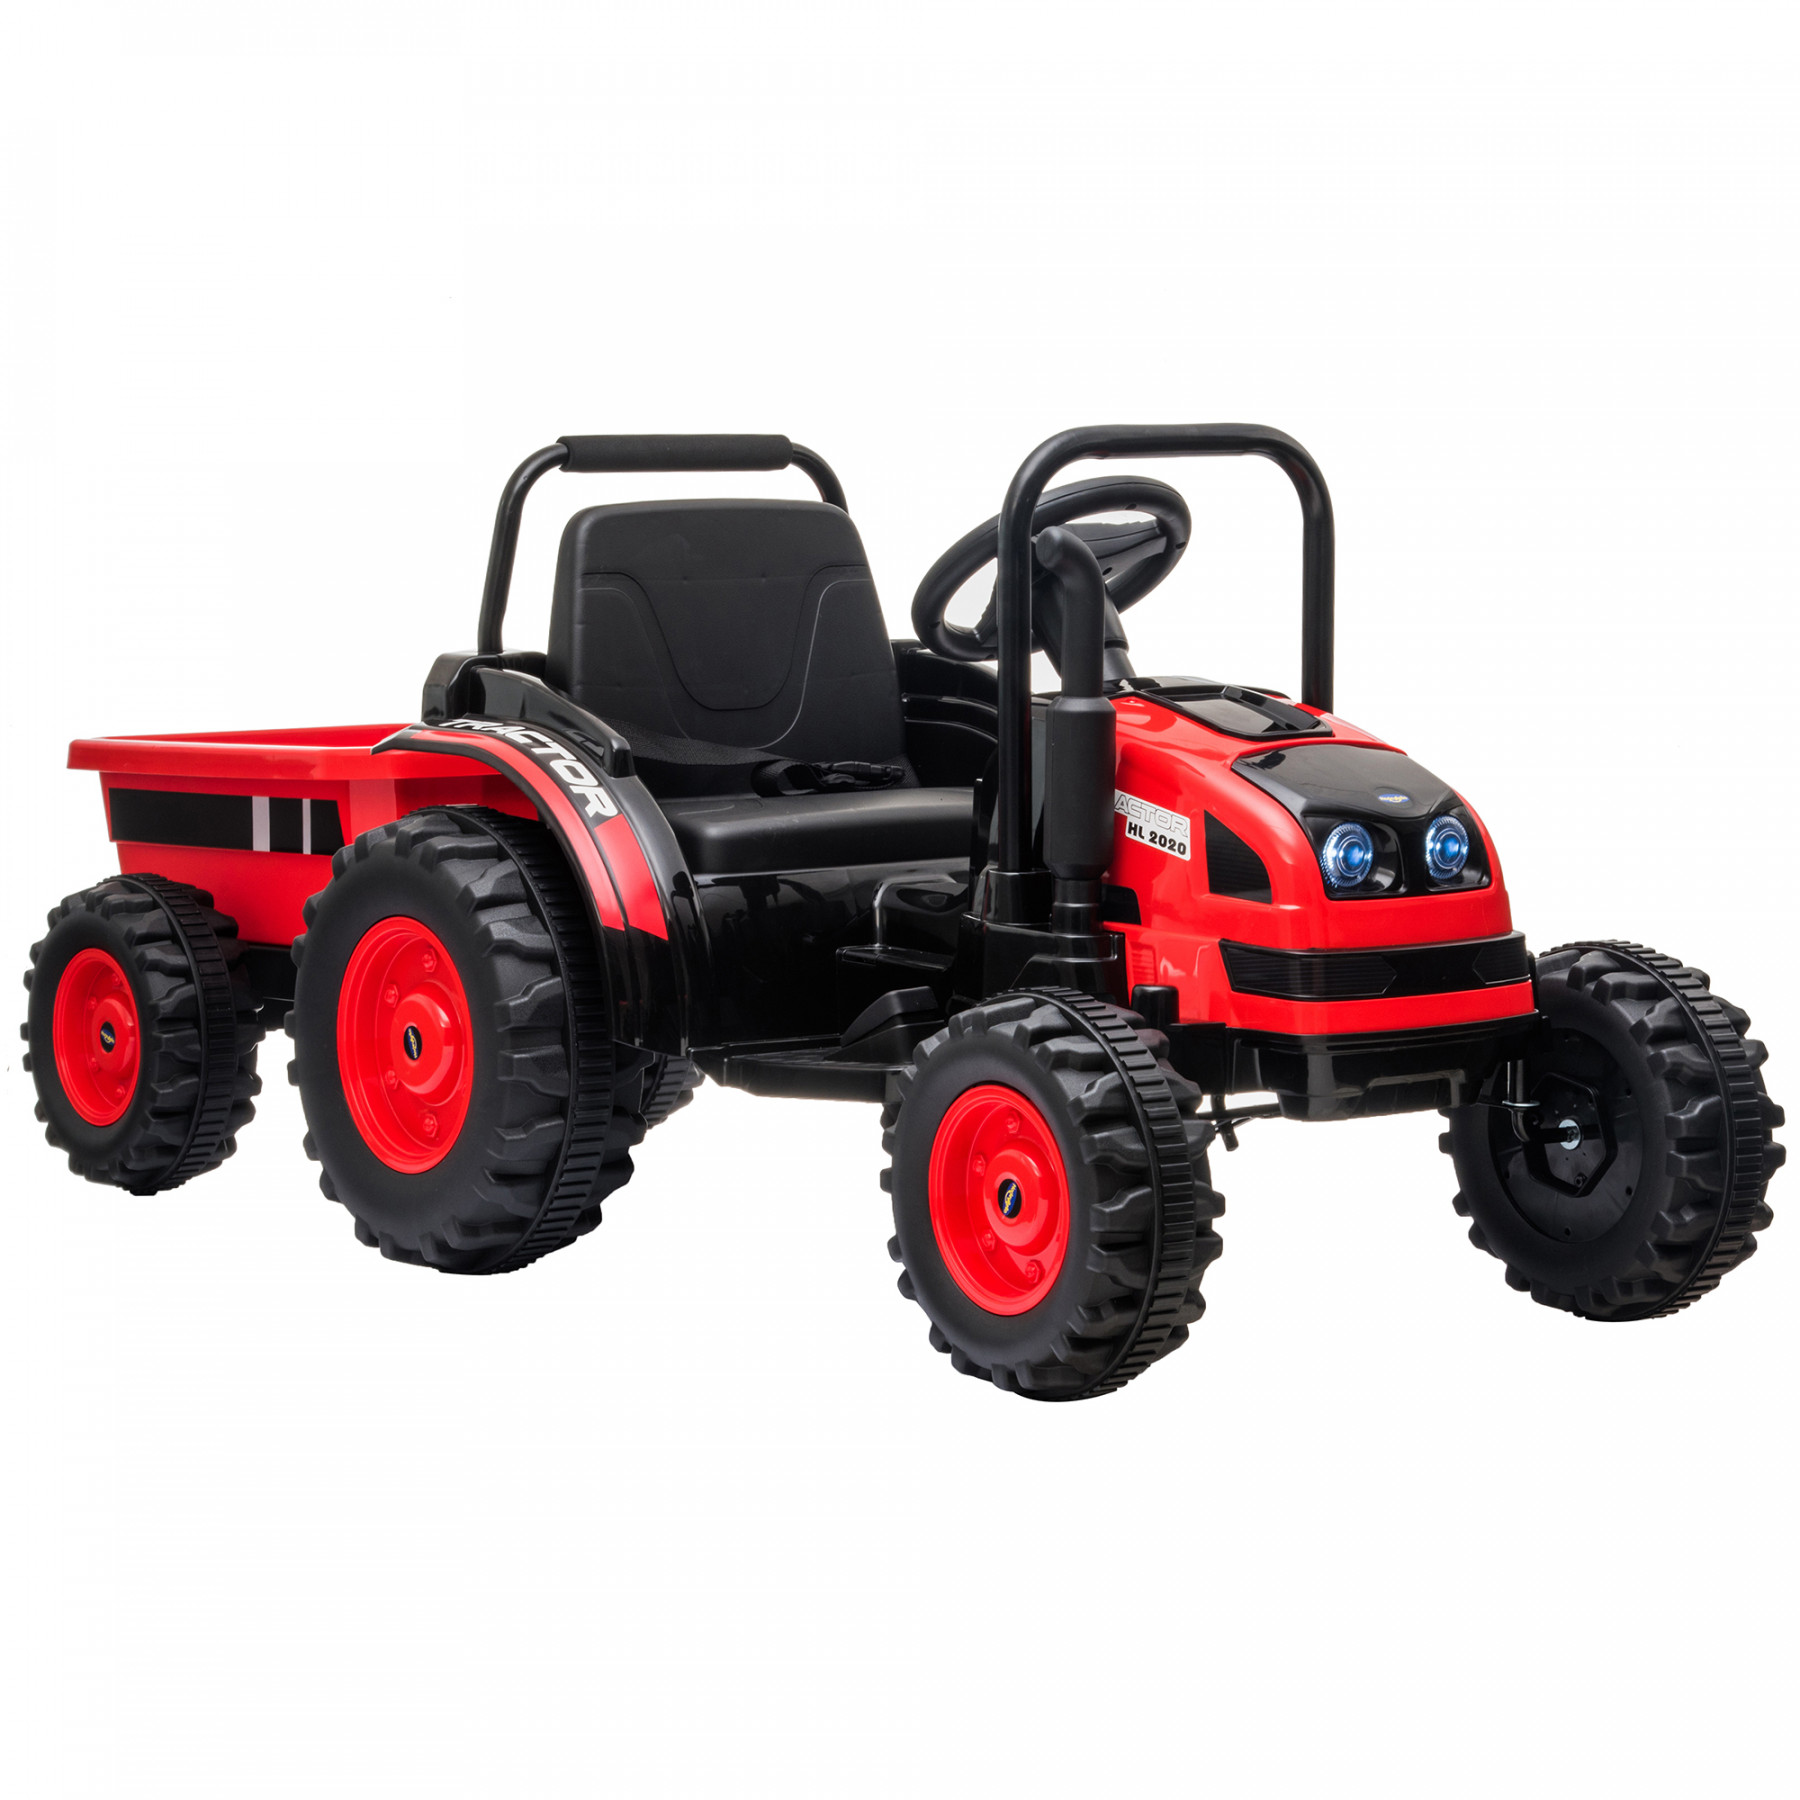 Xtreme 12V Ride on Electric Tractor With Trailer And 2.4G Remote Control Red